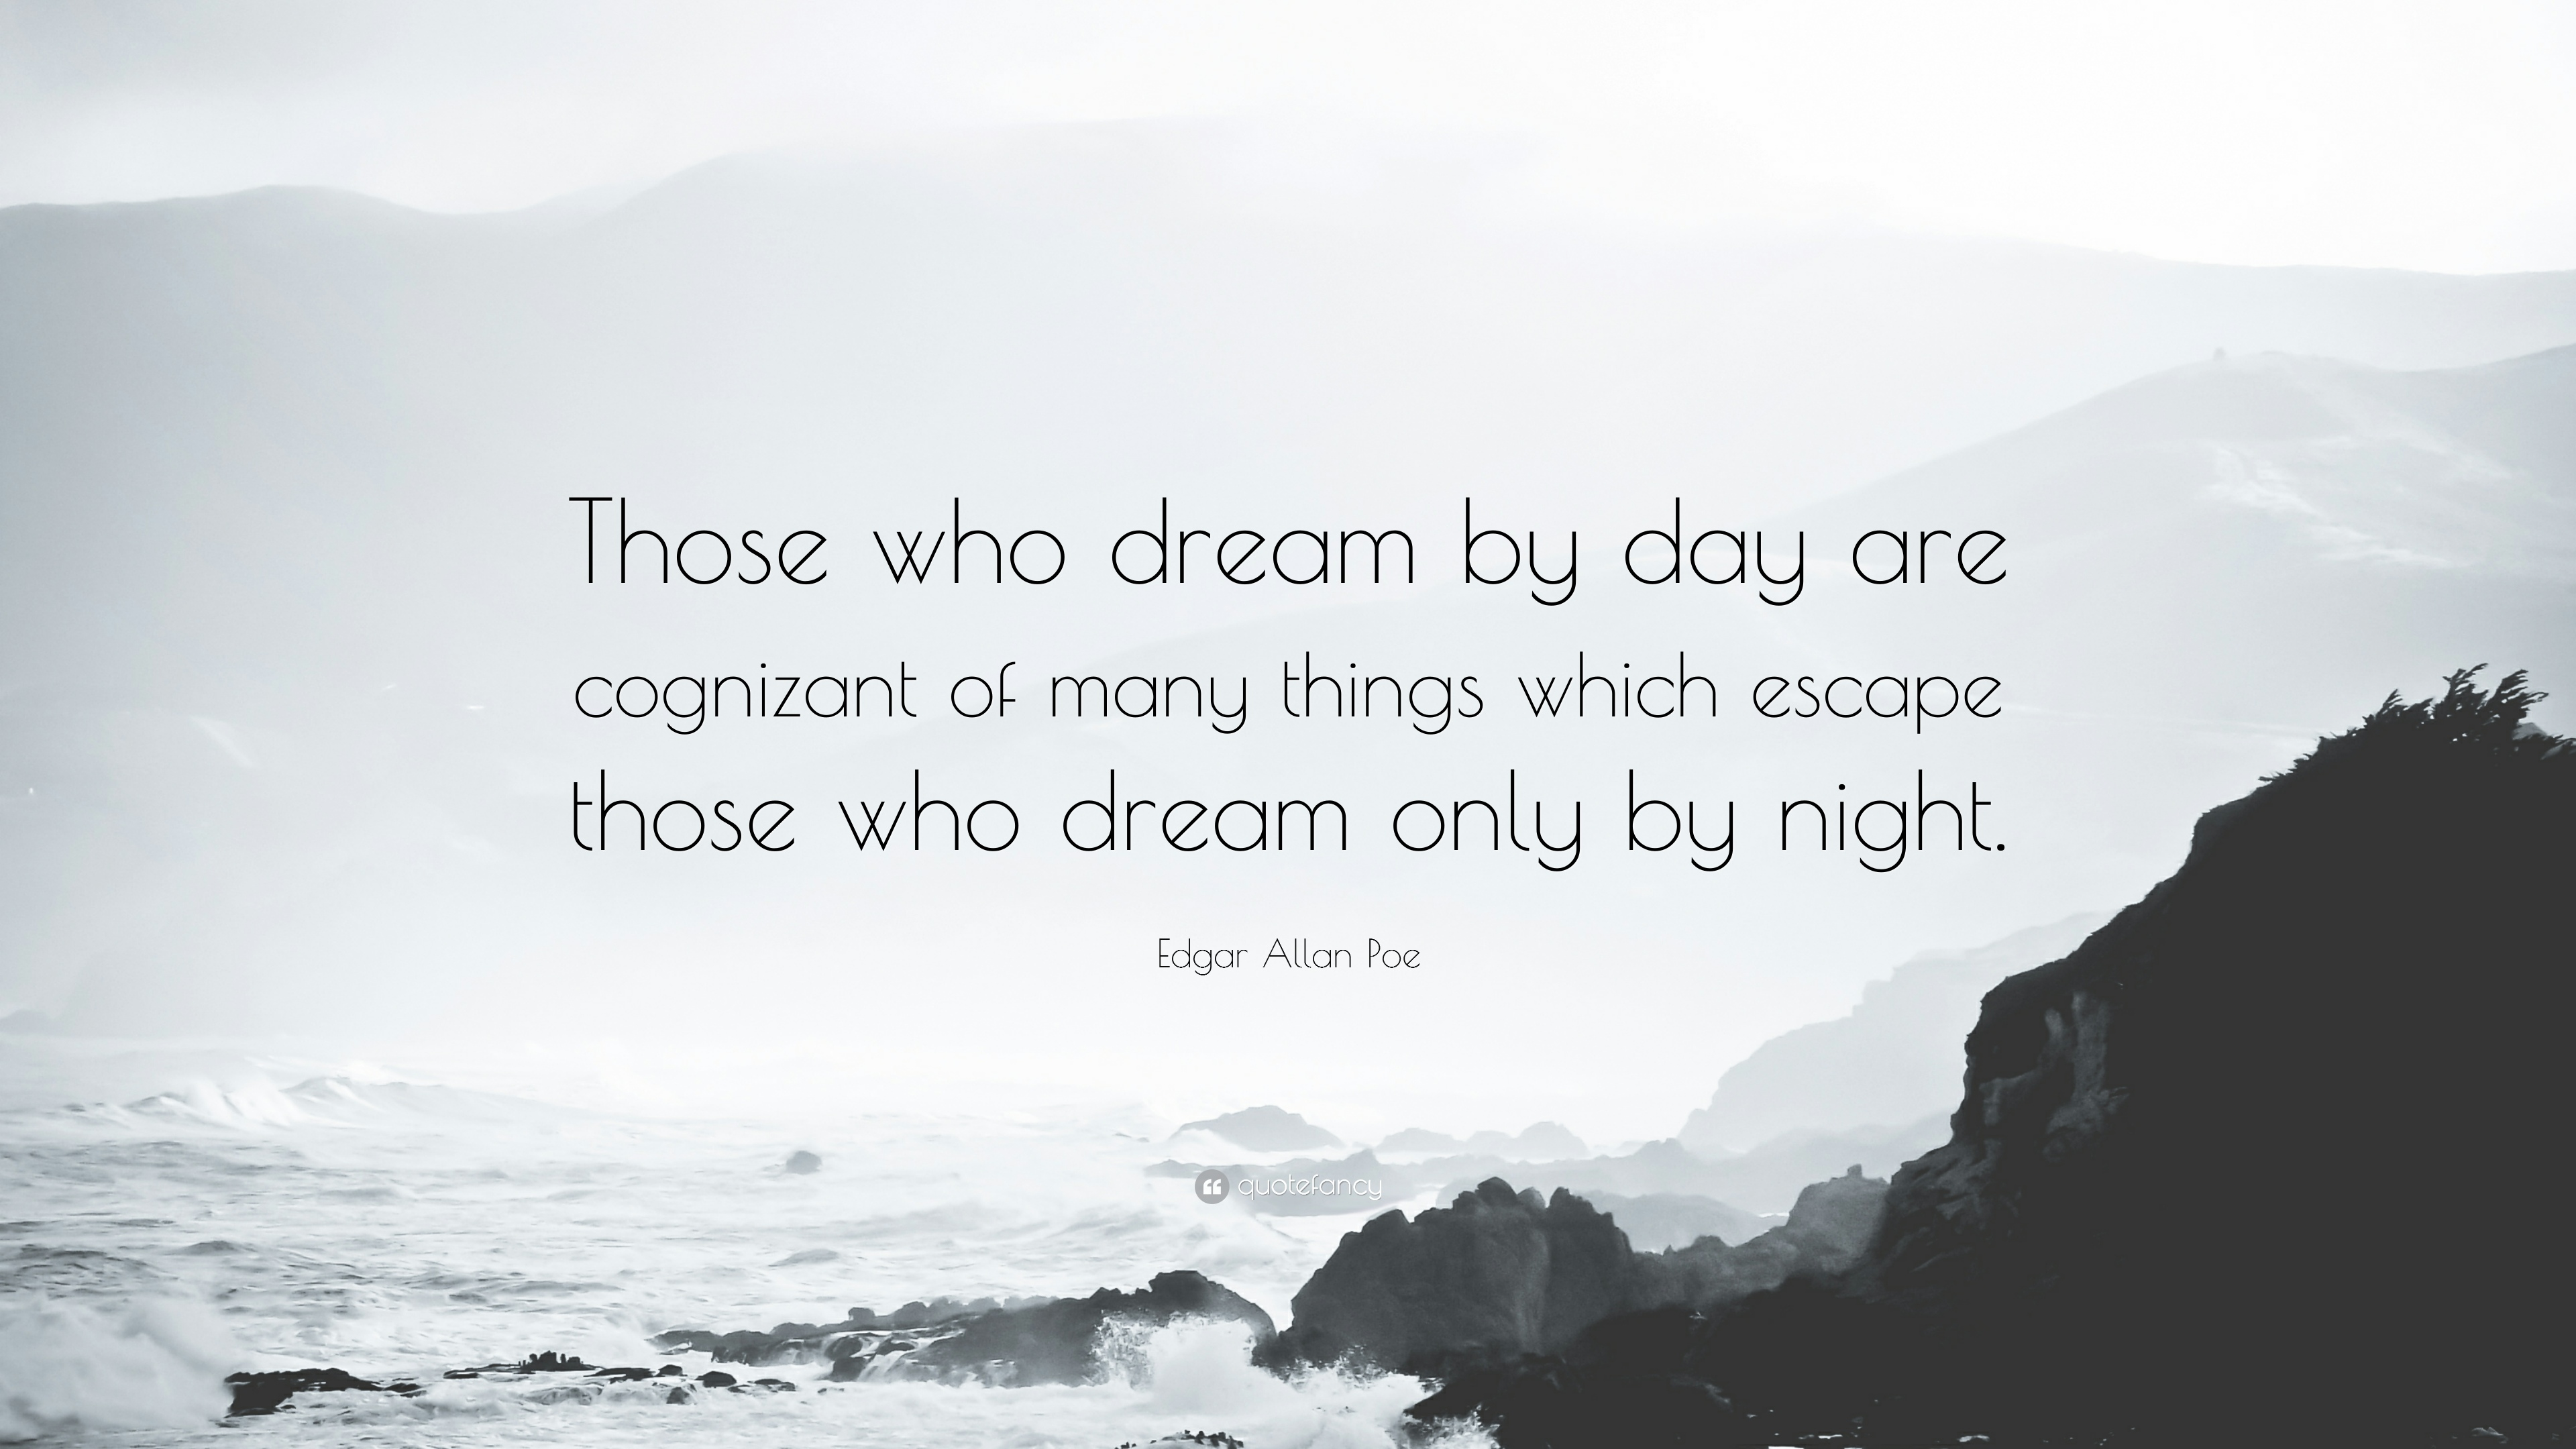 Edgar Allan Poe Quote Those Who Dream By Day Are Cognizant Of Many